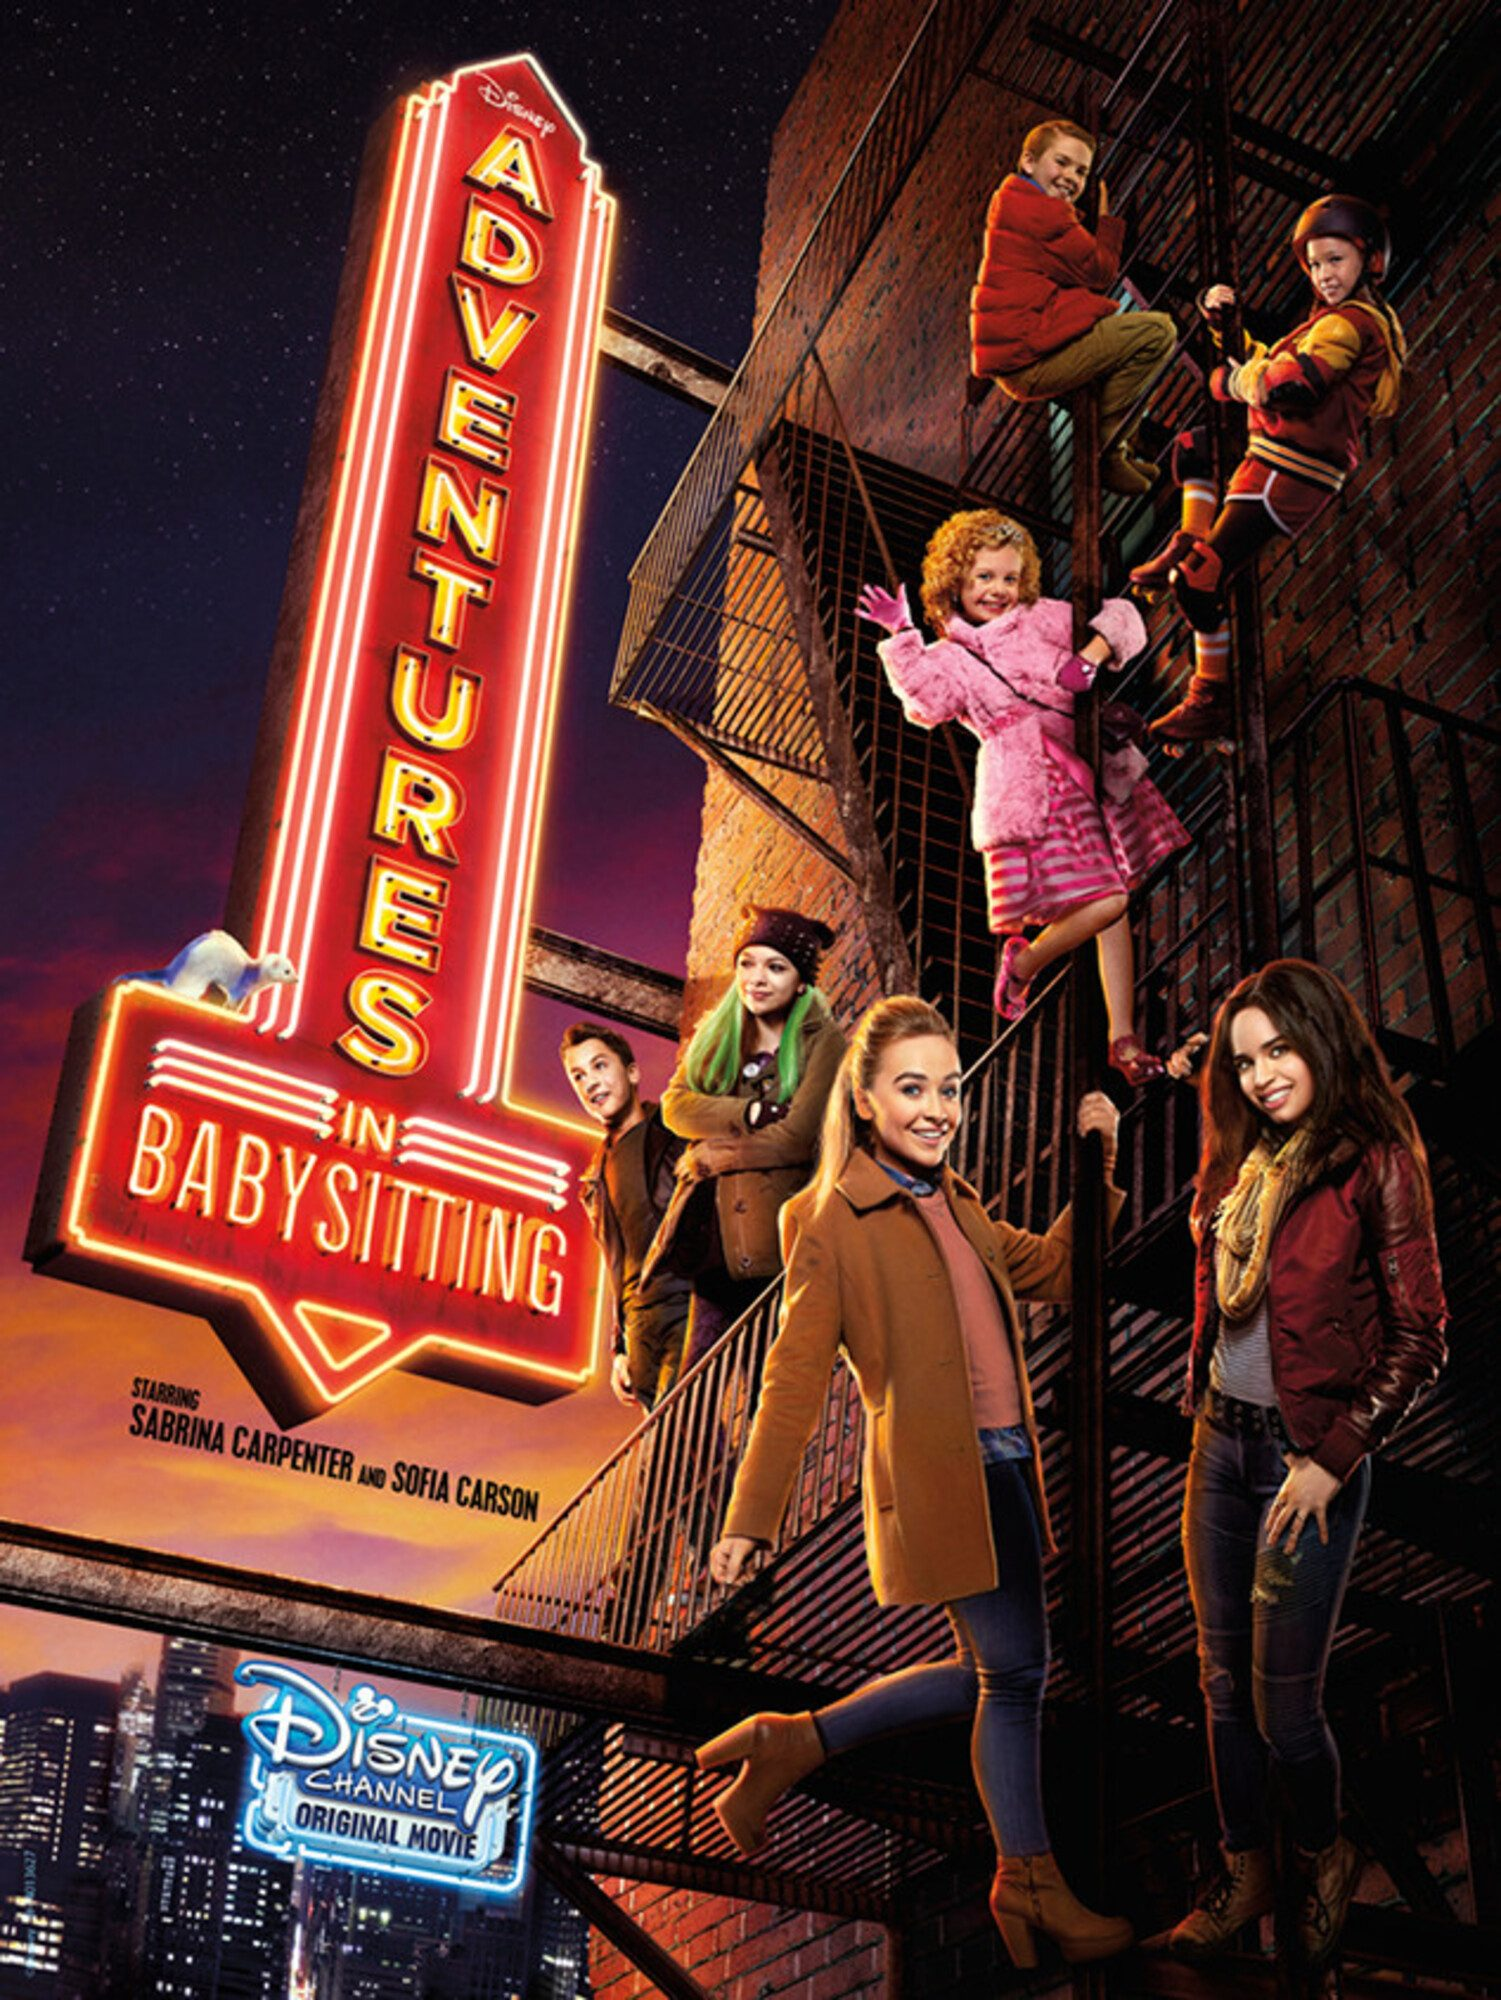 affiche poster babysitting night adventures disney channel